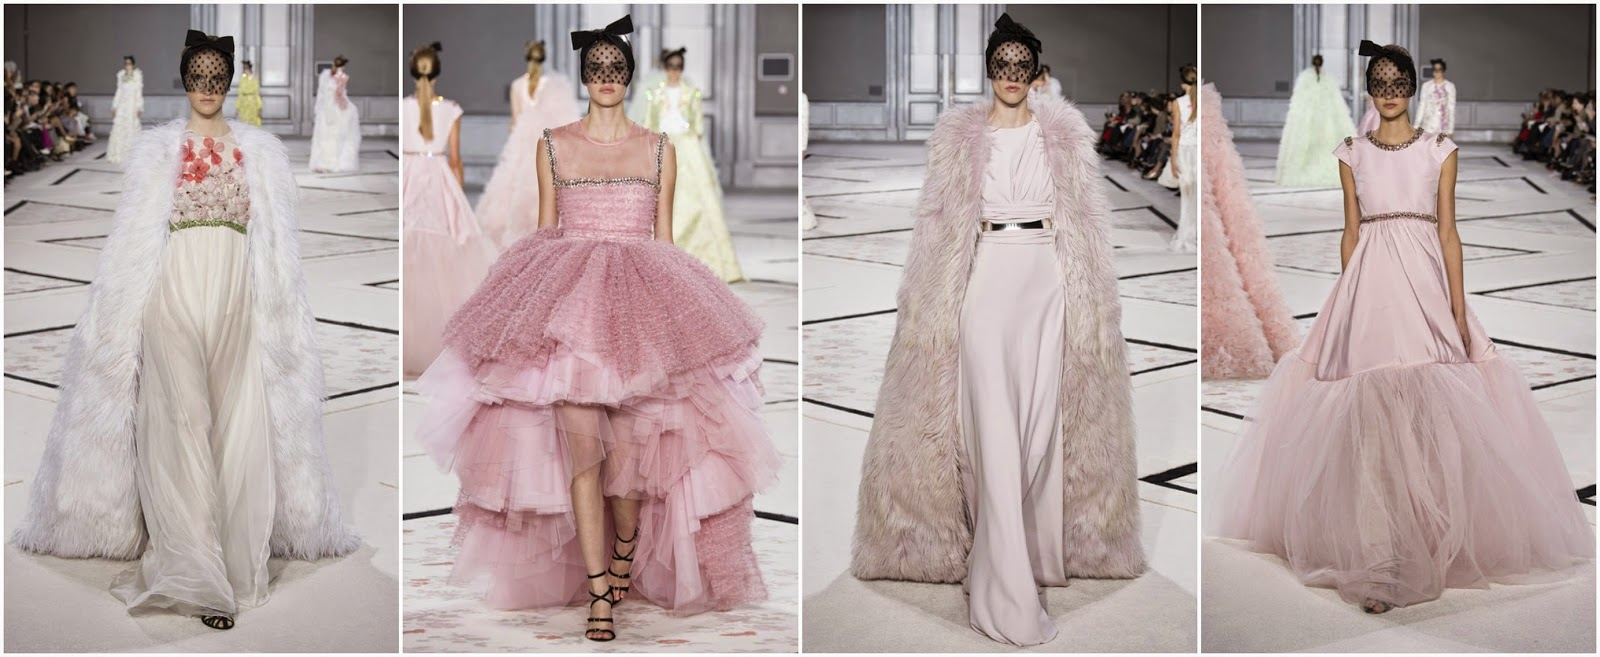 Giambattista Vali SS15 Couture show, fashion, catwalk, SS15, haute couture, fashion week, designer, vogue